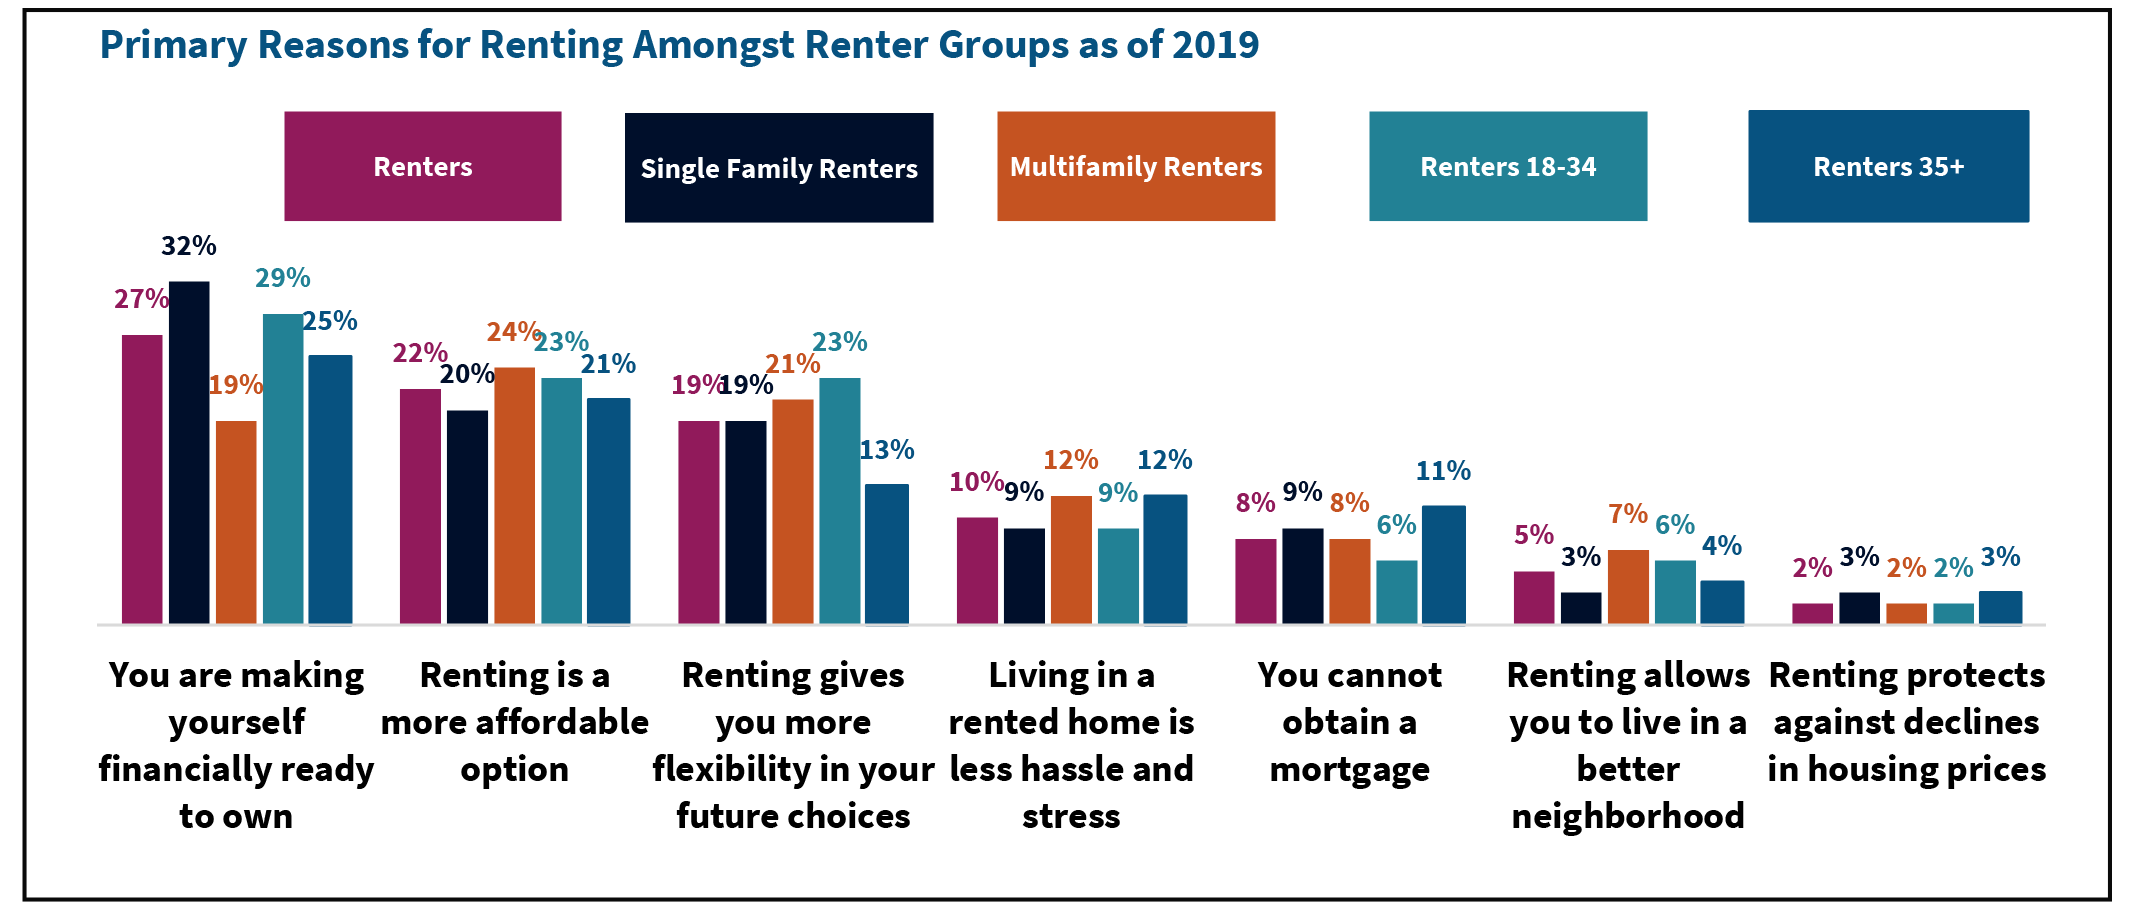 Primary Reasons for Renting